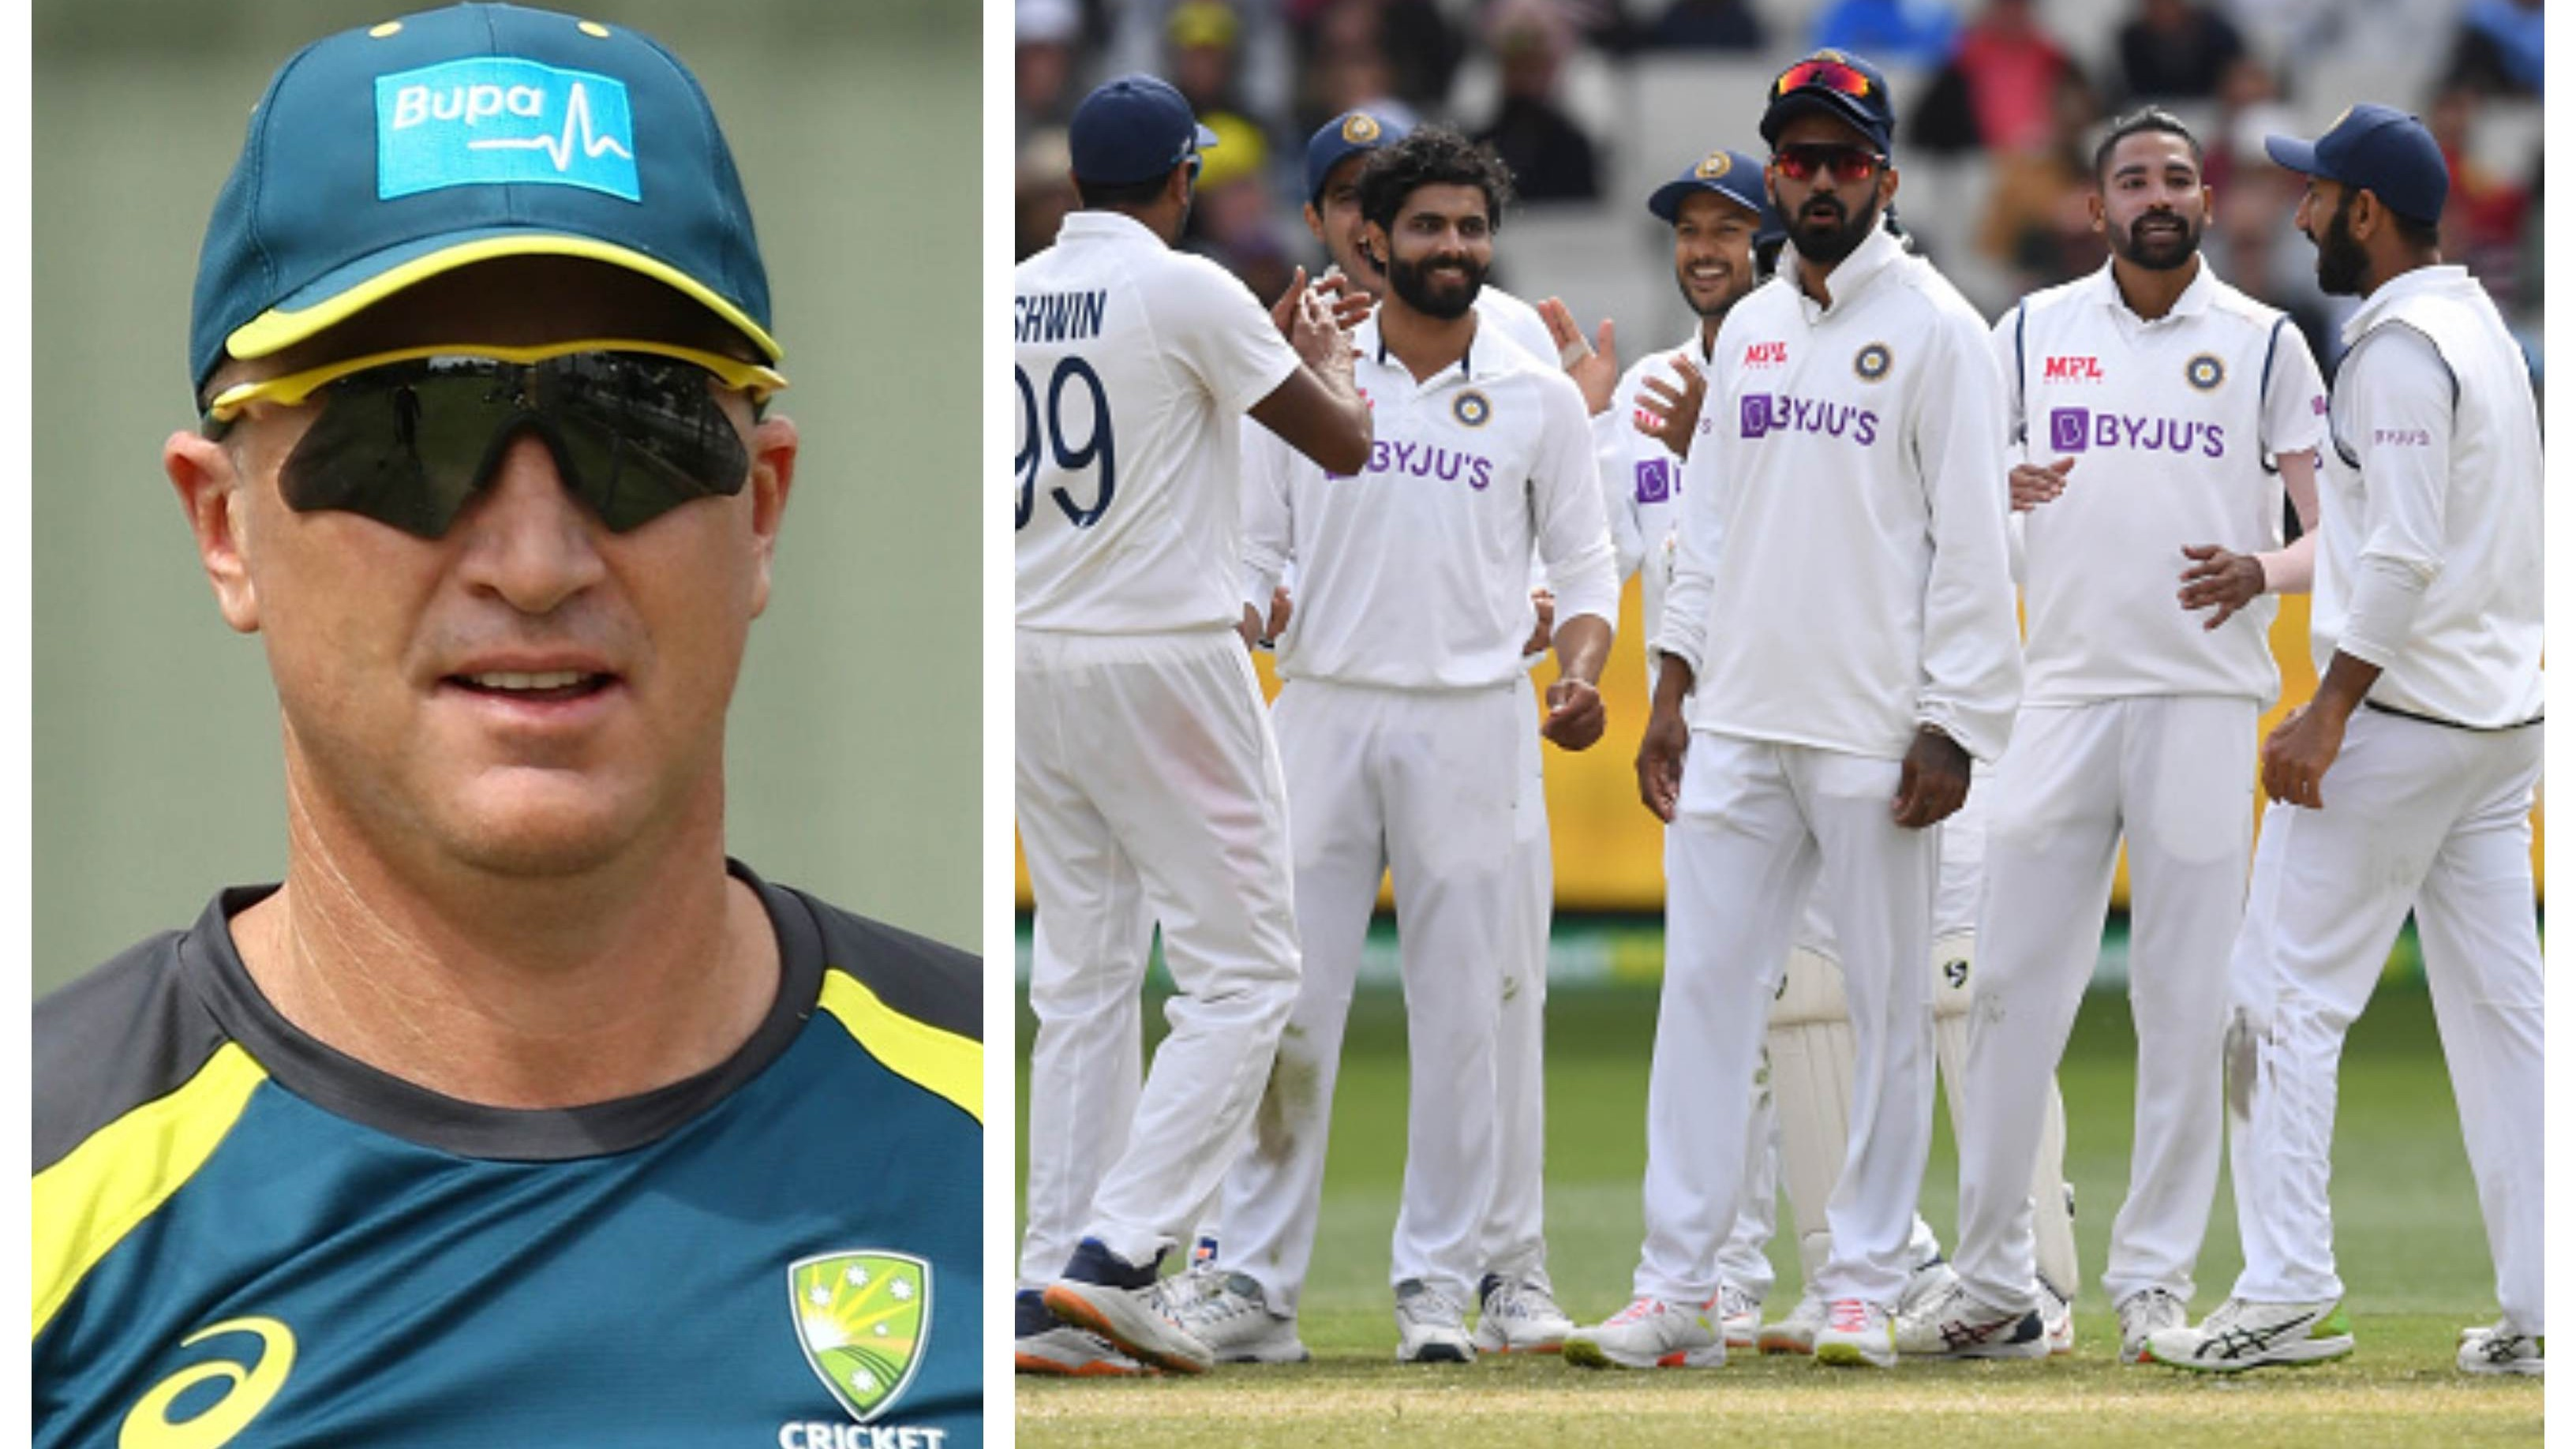 AUS v IND 2020-21: Brad Haddin says India reluctant to go to Gabba as nobody wins there against Australia